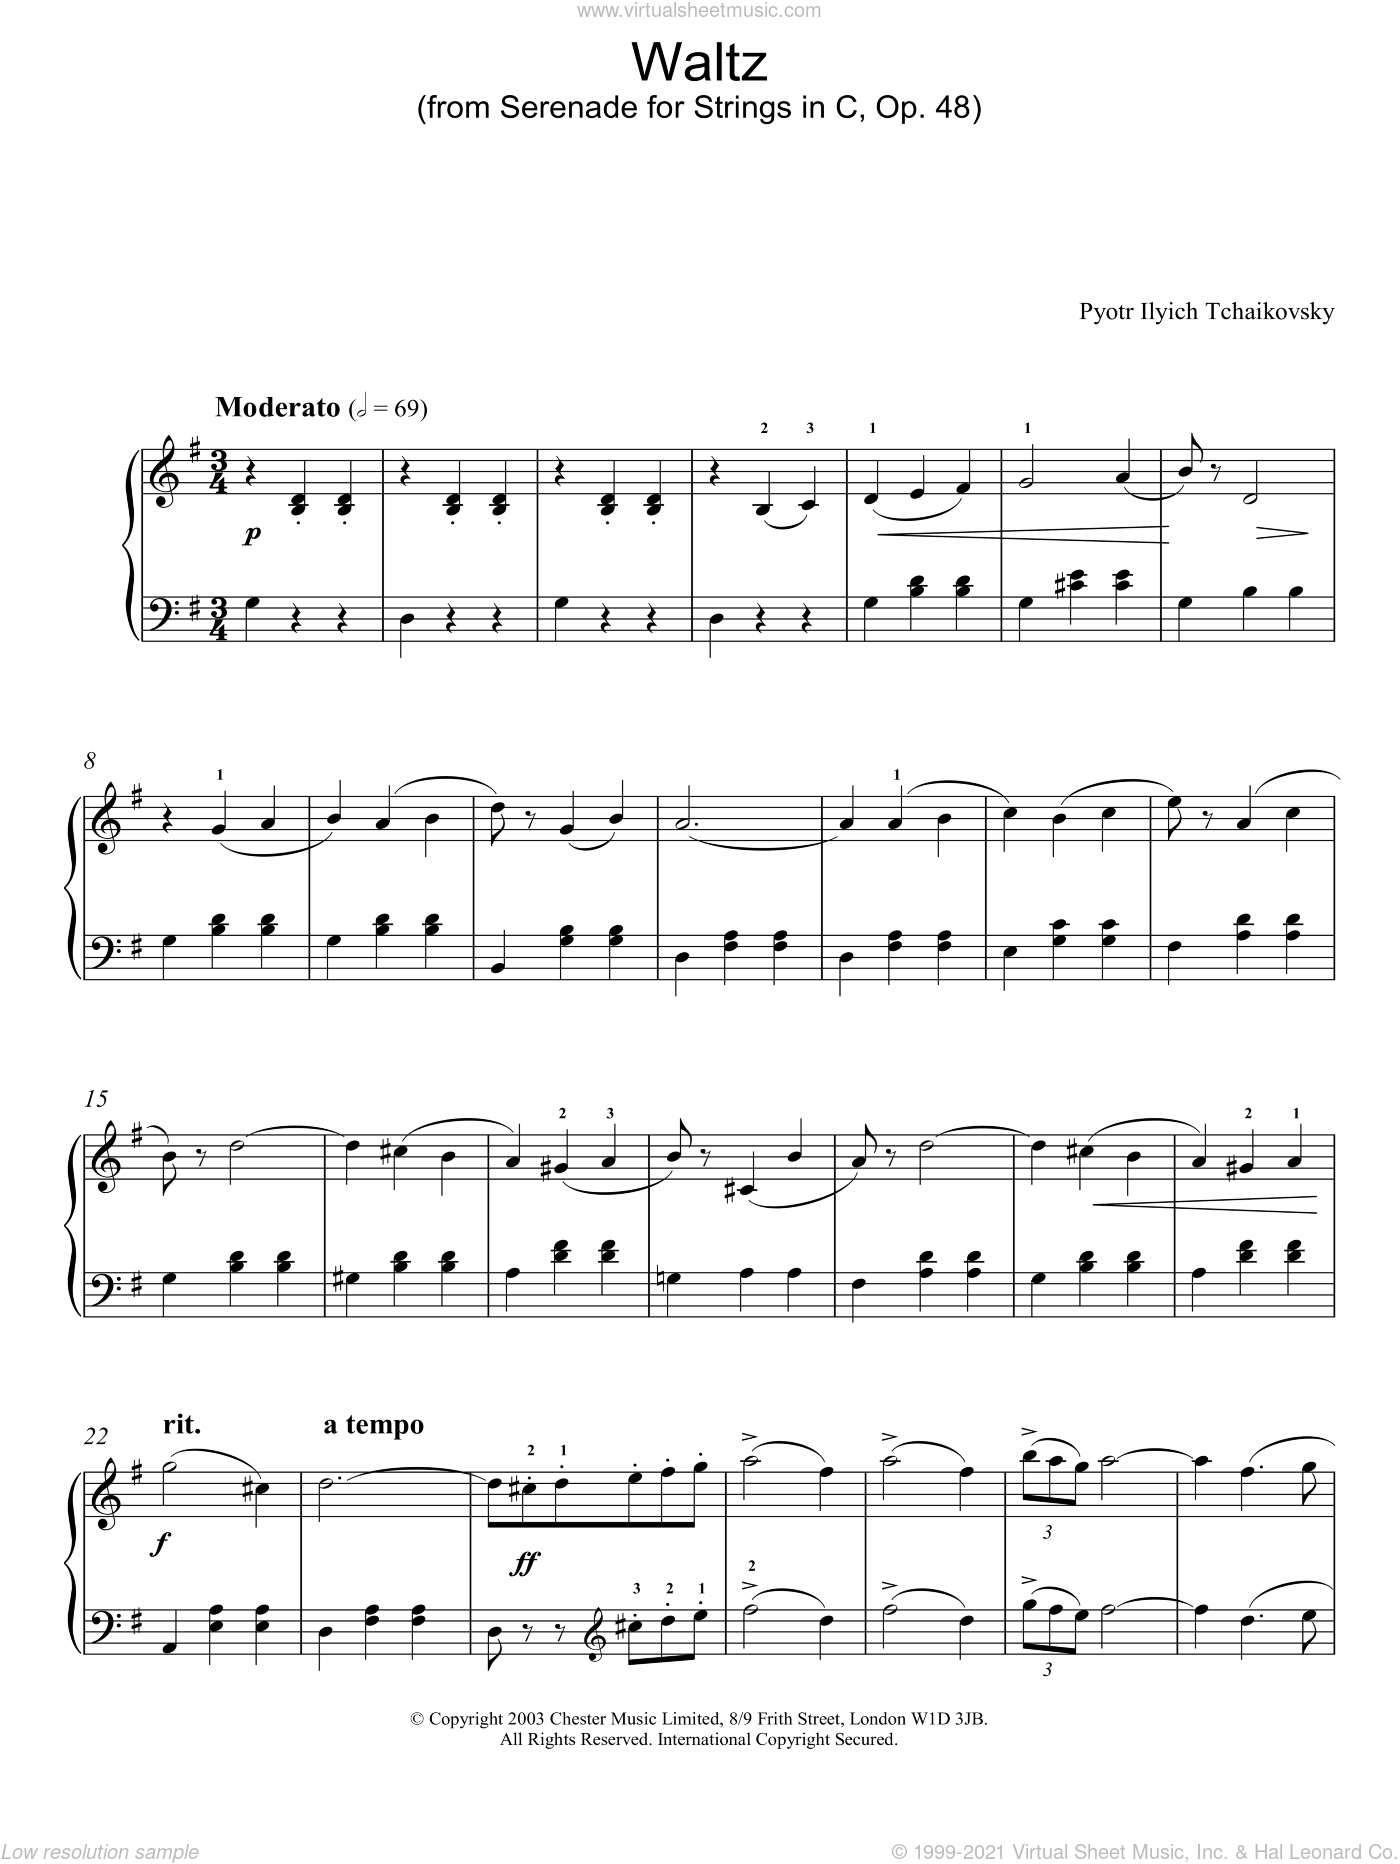 Waltz (from Serenade for Strings In C, Op. 48) sheet music for piano solo by Pyotr Ilyich Tchaikovsky. Score Image Preview.